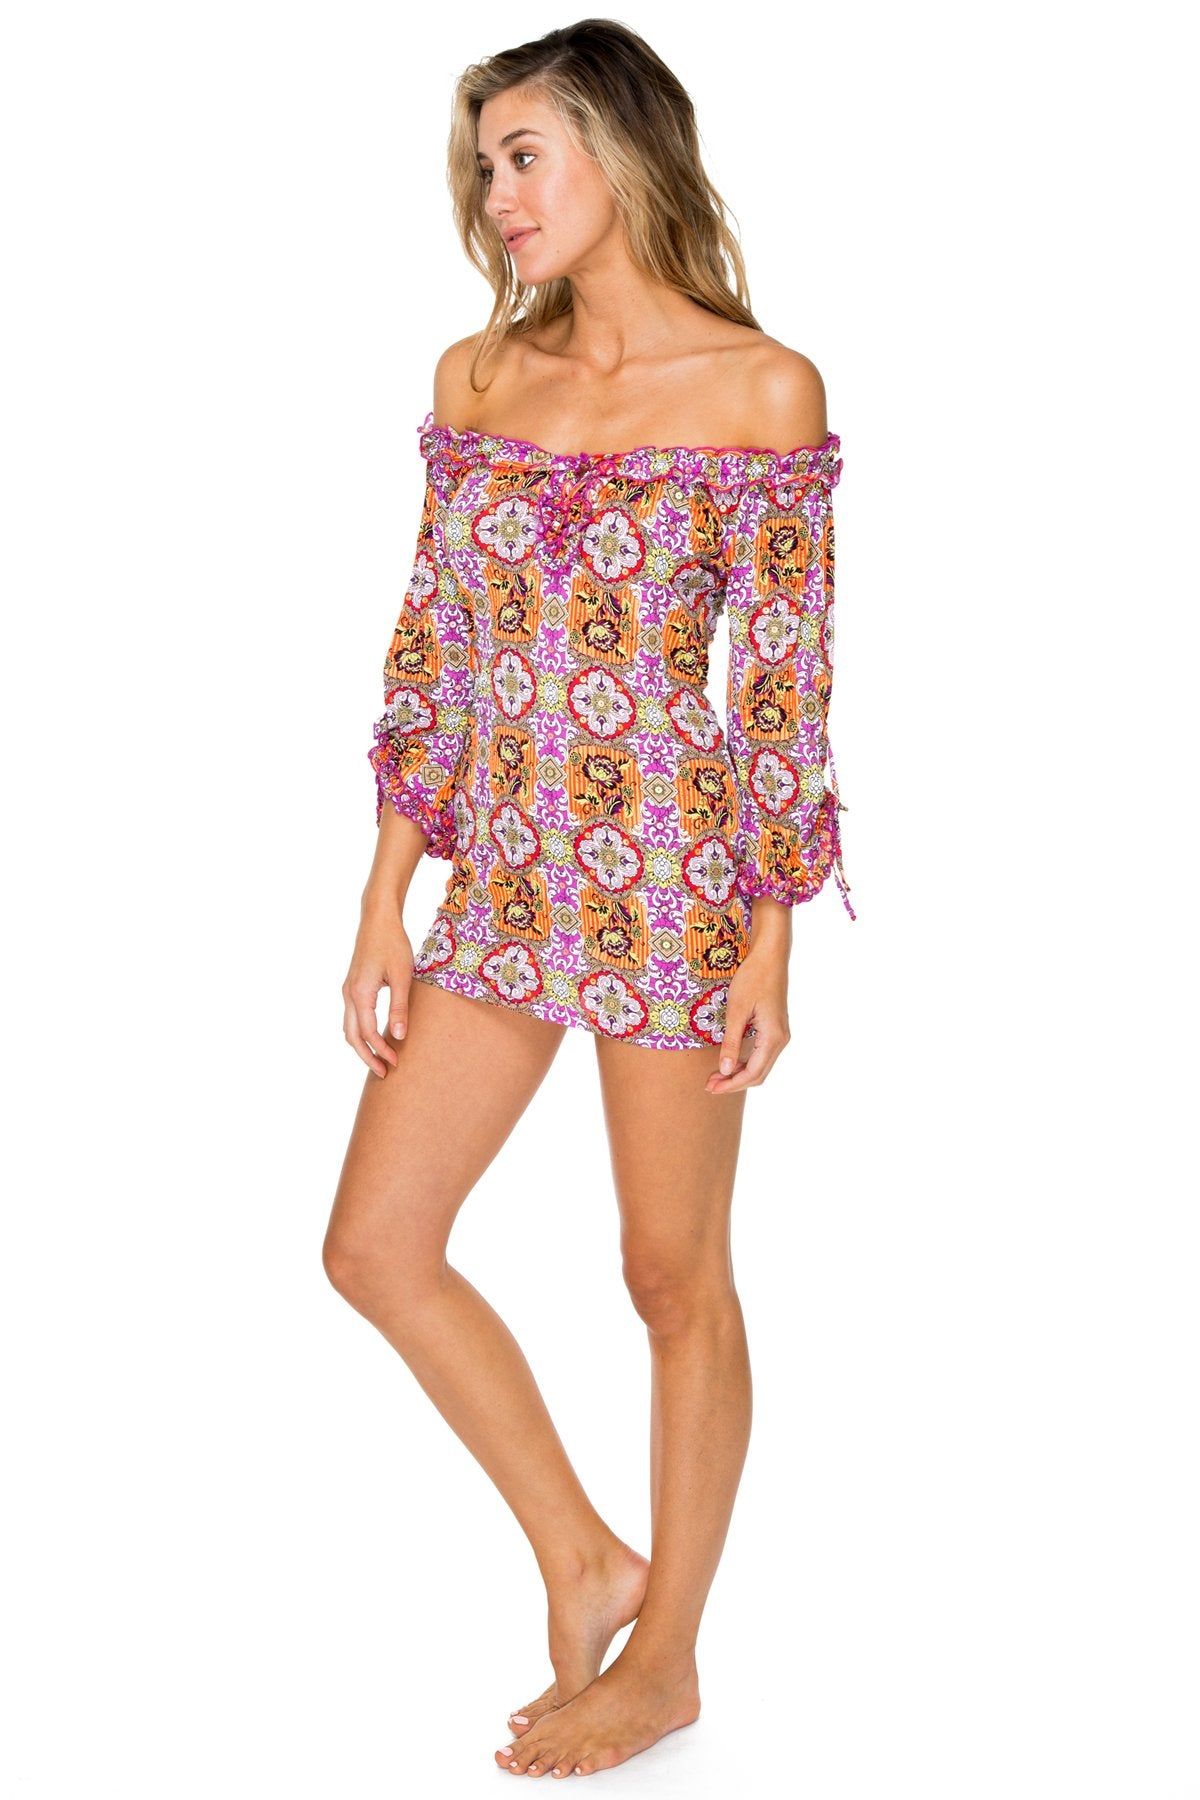 FLOR DE VERANO - Ruffle V Neck Dress • Multicolor